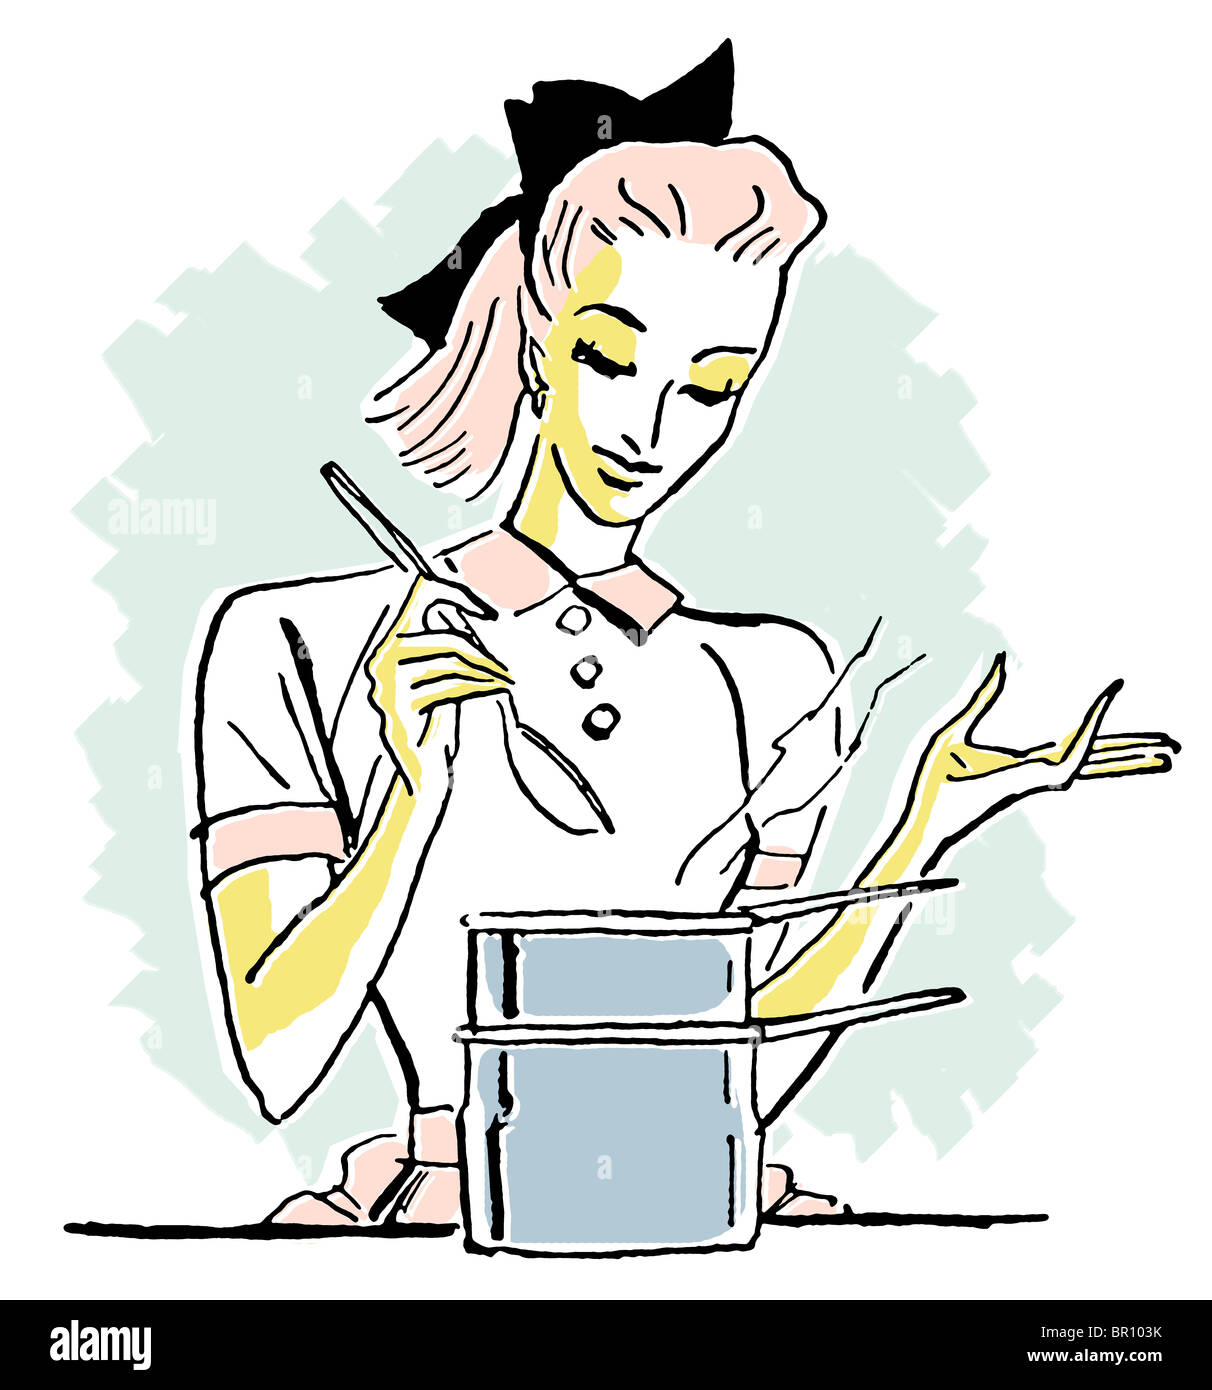 A pop art style portrait of a chef - Stock Image